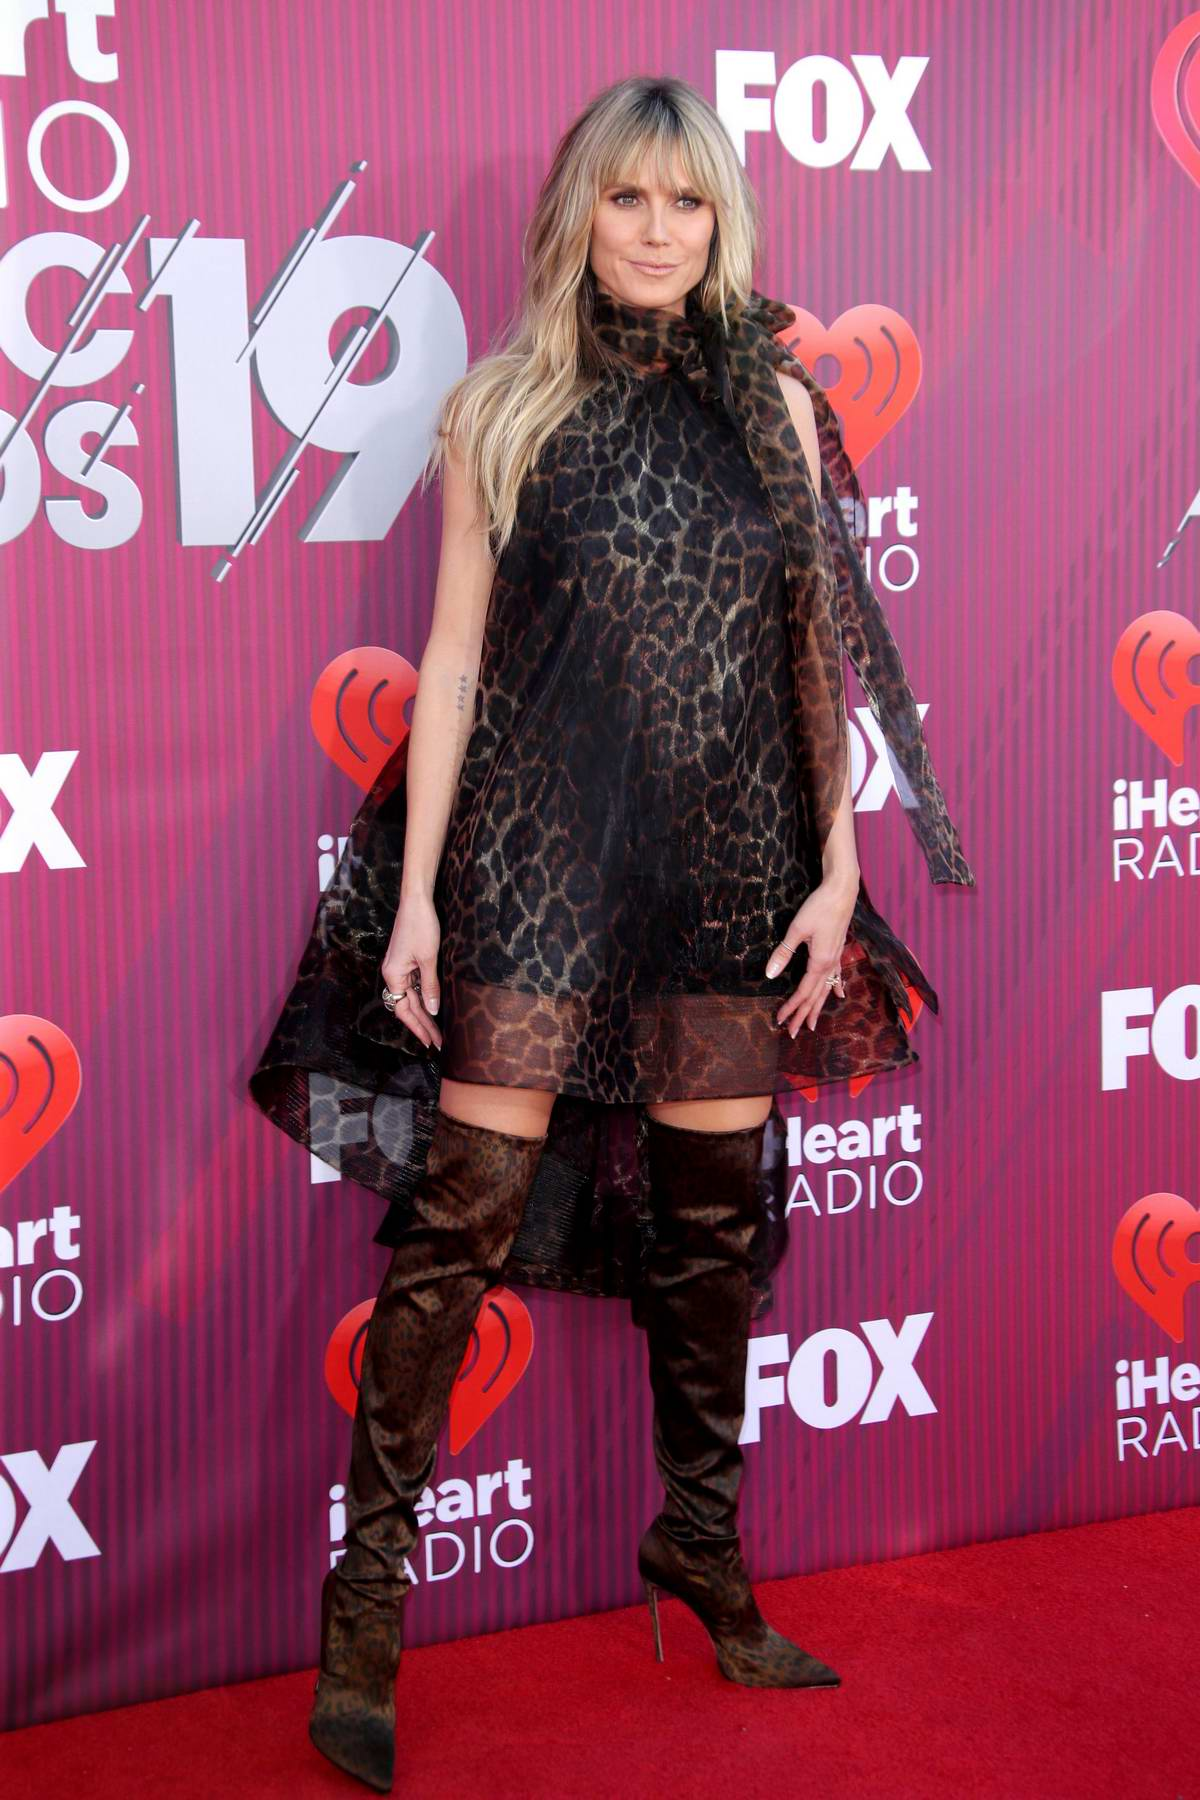 Heidi Klum attends the 2019 iHeartRadio Music Awards at Microsoft Theater in Los Angeles